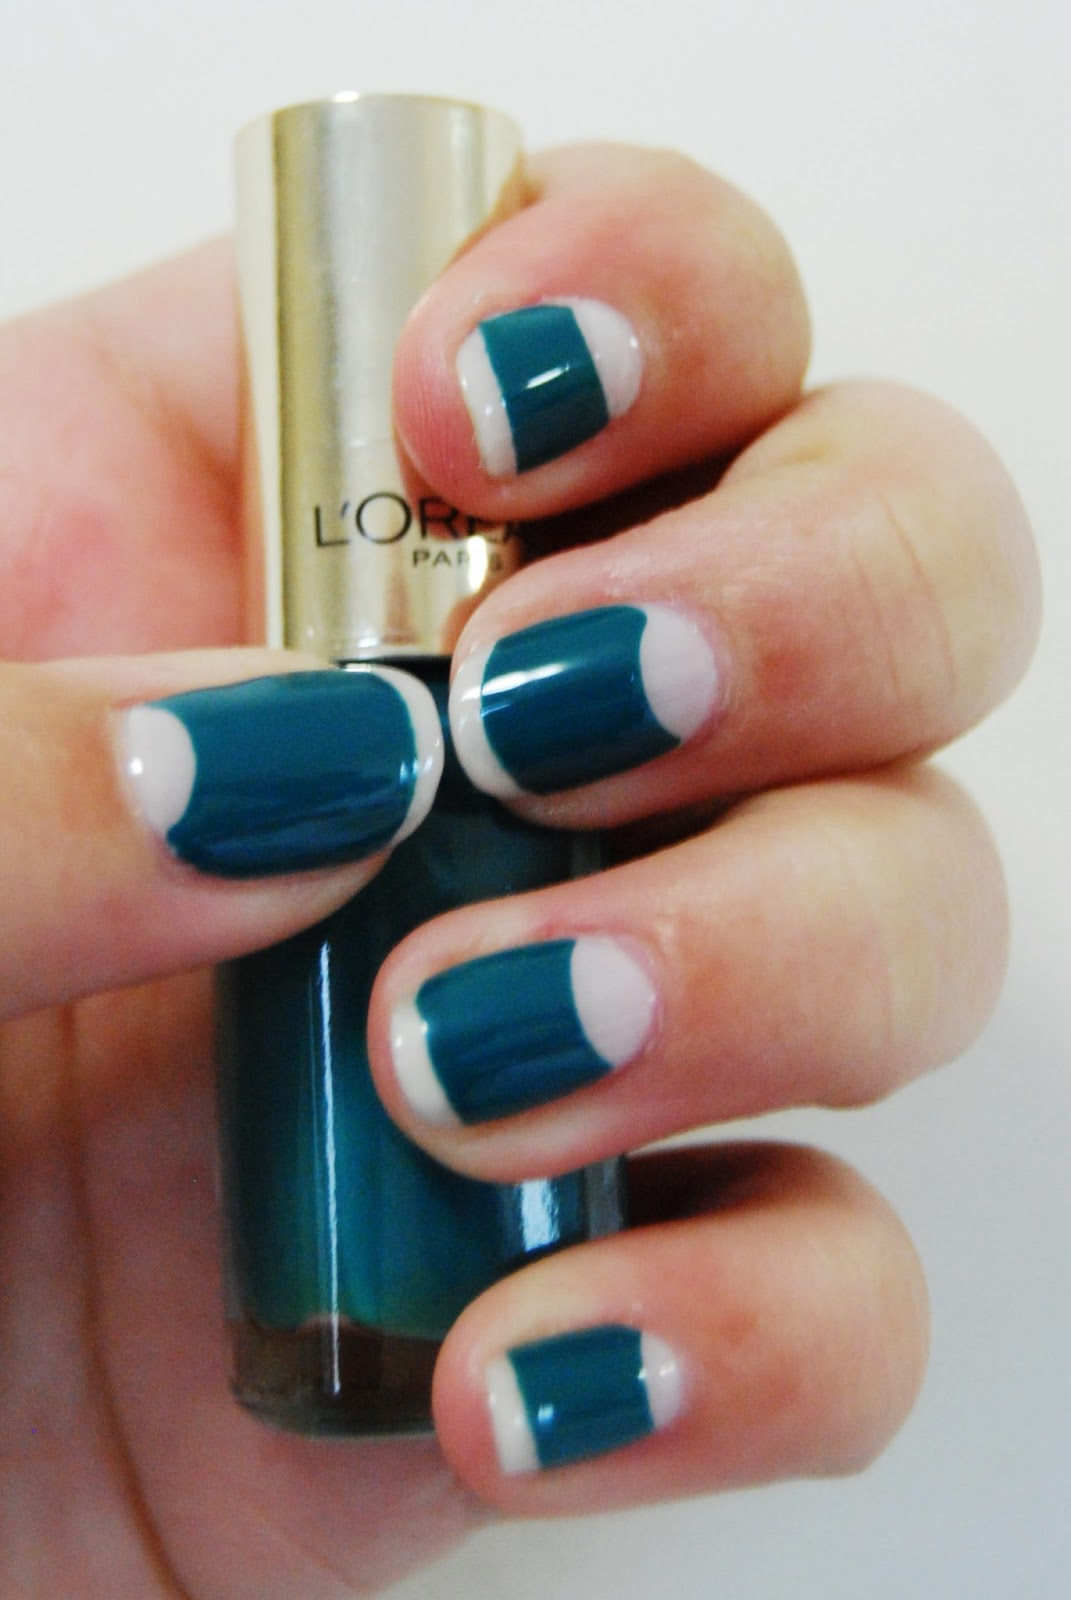 Just Nail-in': Inspired By... The Great Gatsby